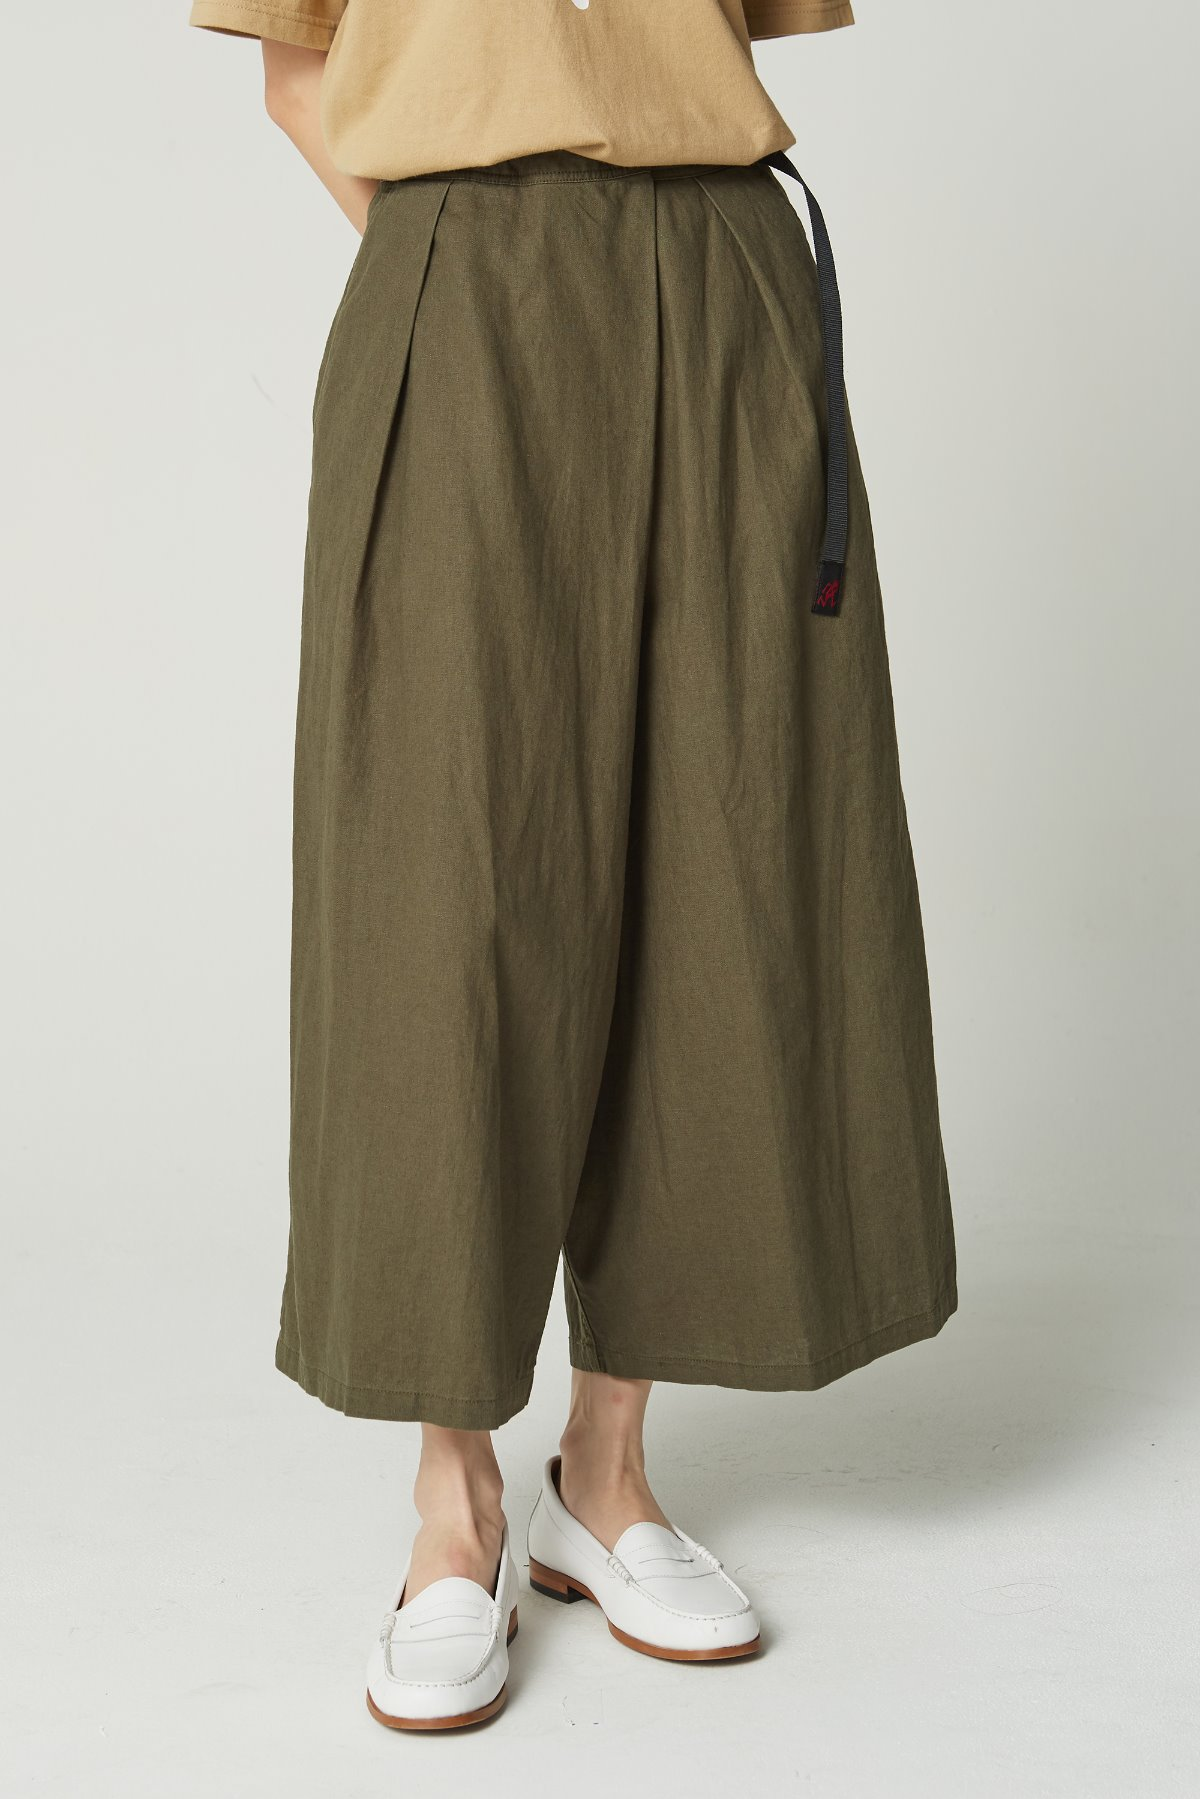 LINEN COTTON WRAP FLARE PANTS OLIVE